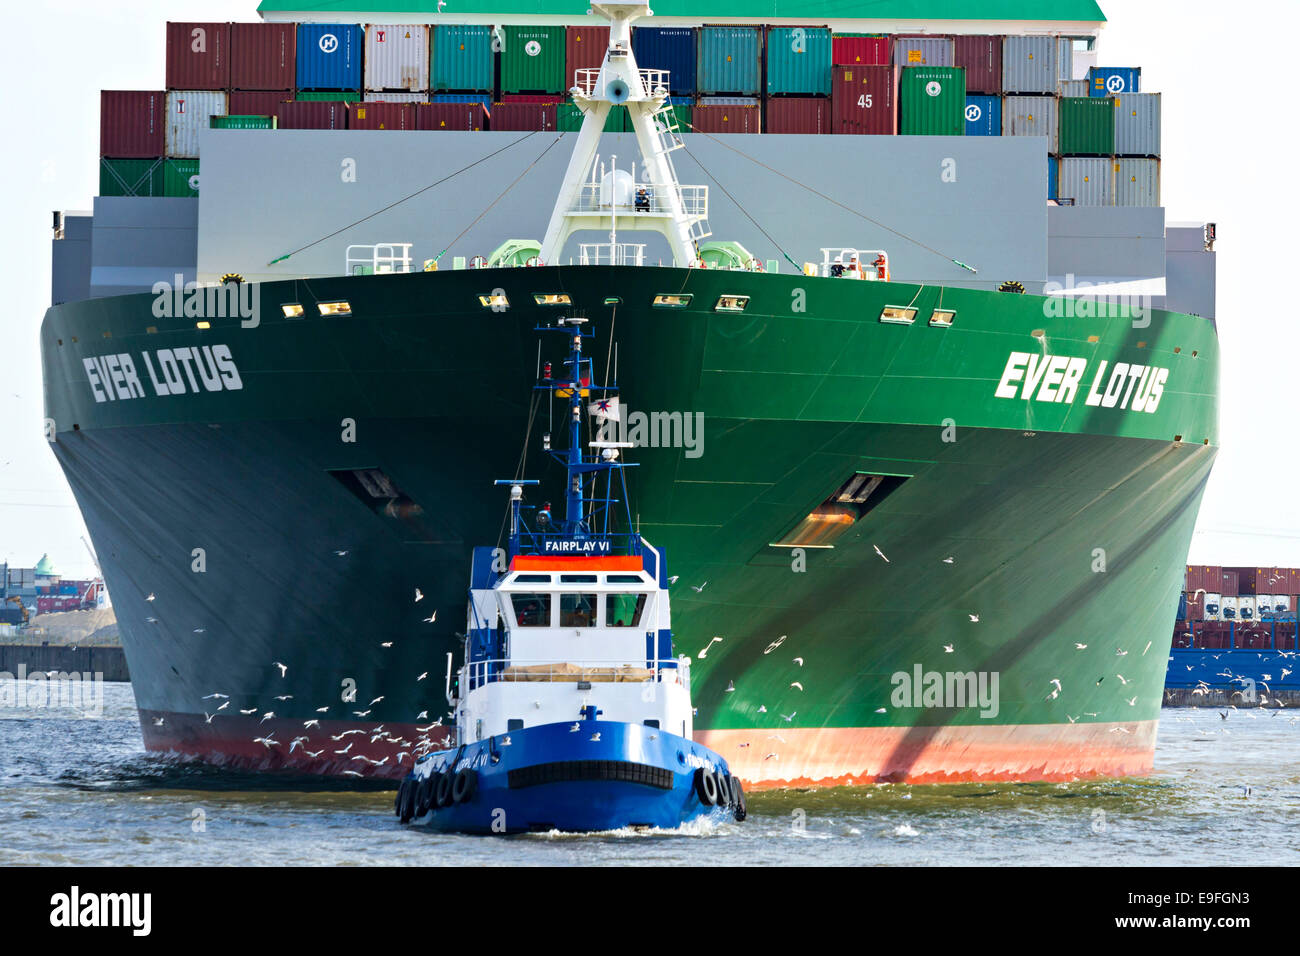 Container Ship Ever Lotus being towed by tug boat, Hamburg Harbour, Germany, Europe. - Stock Image